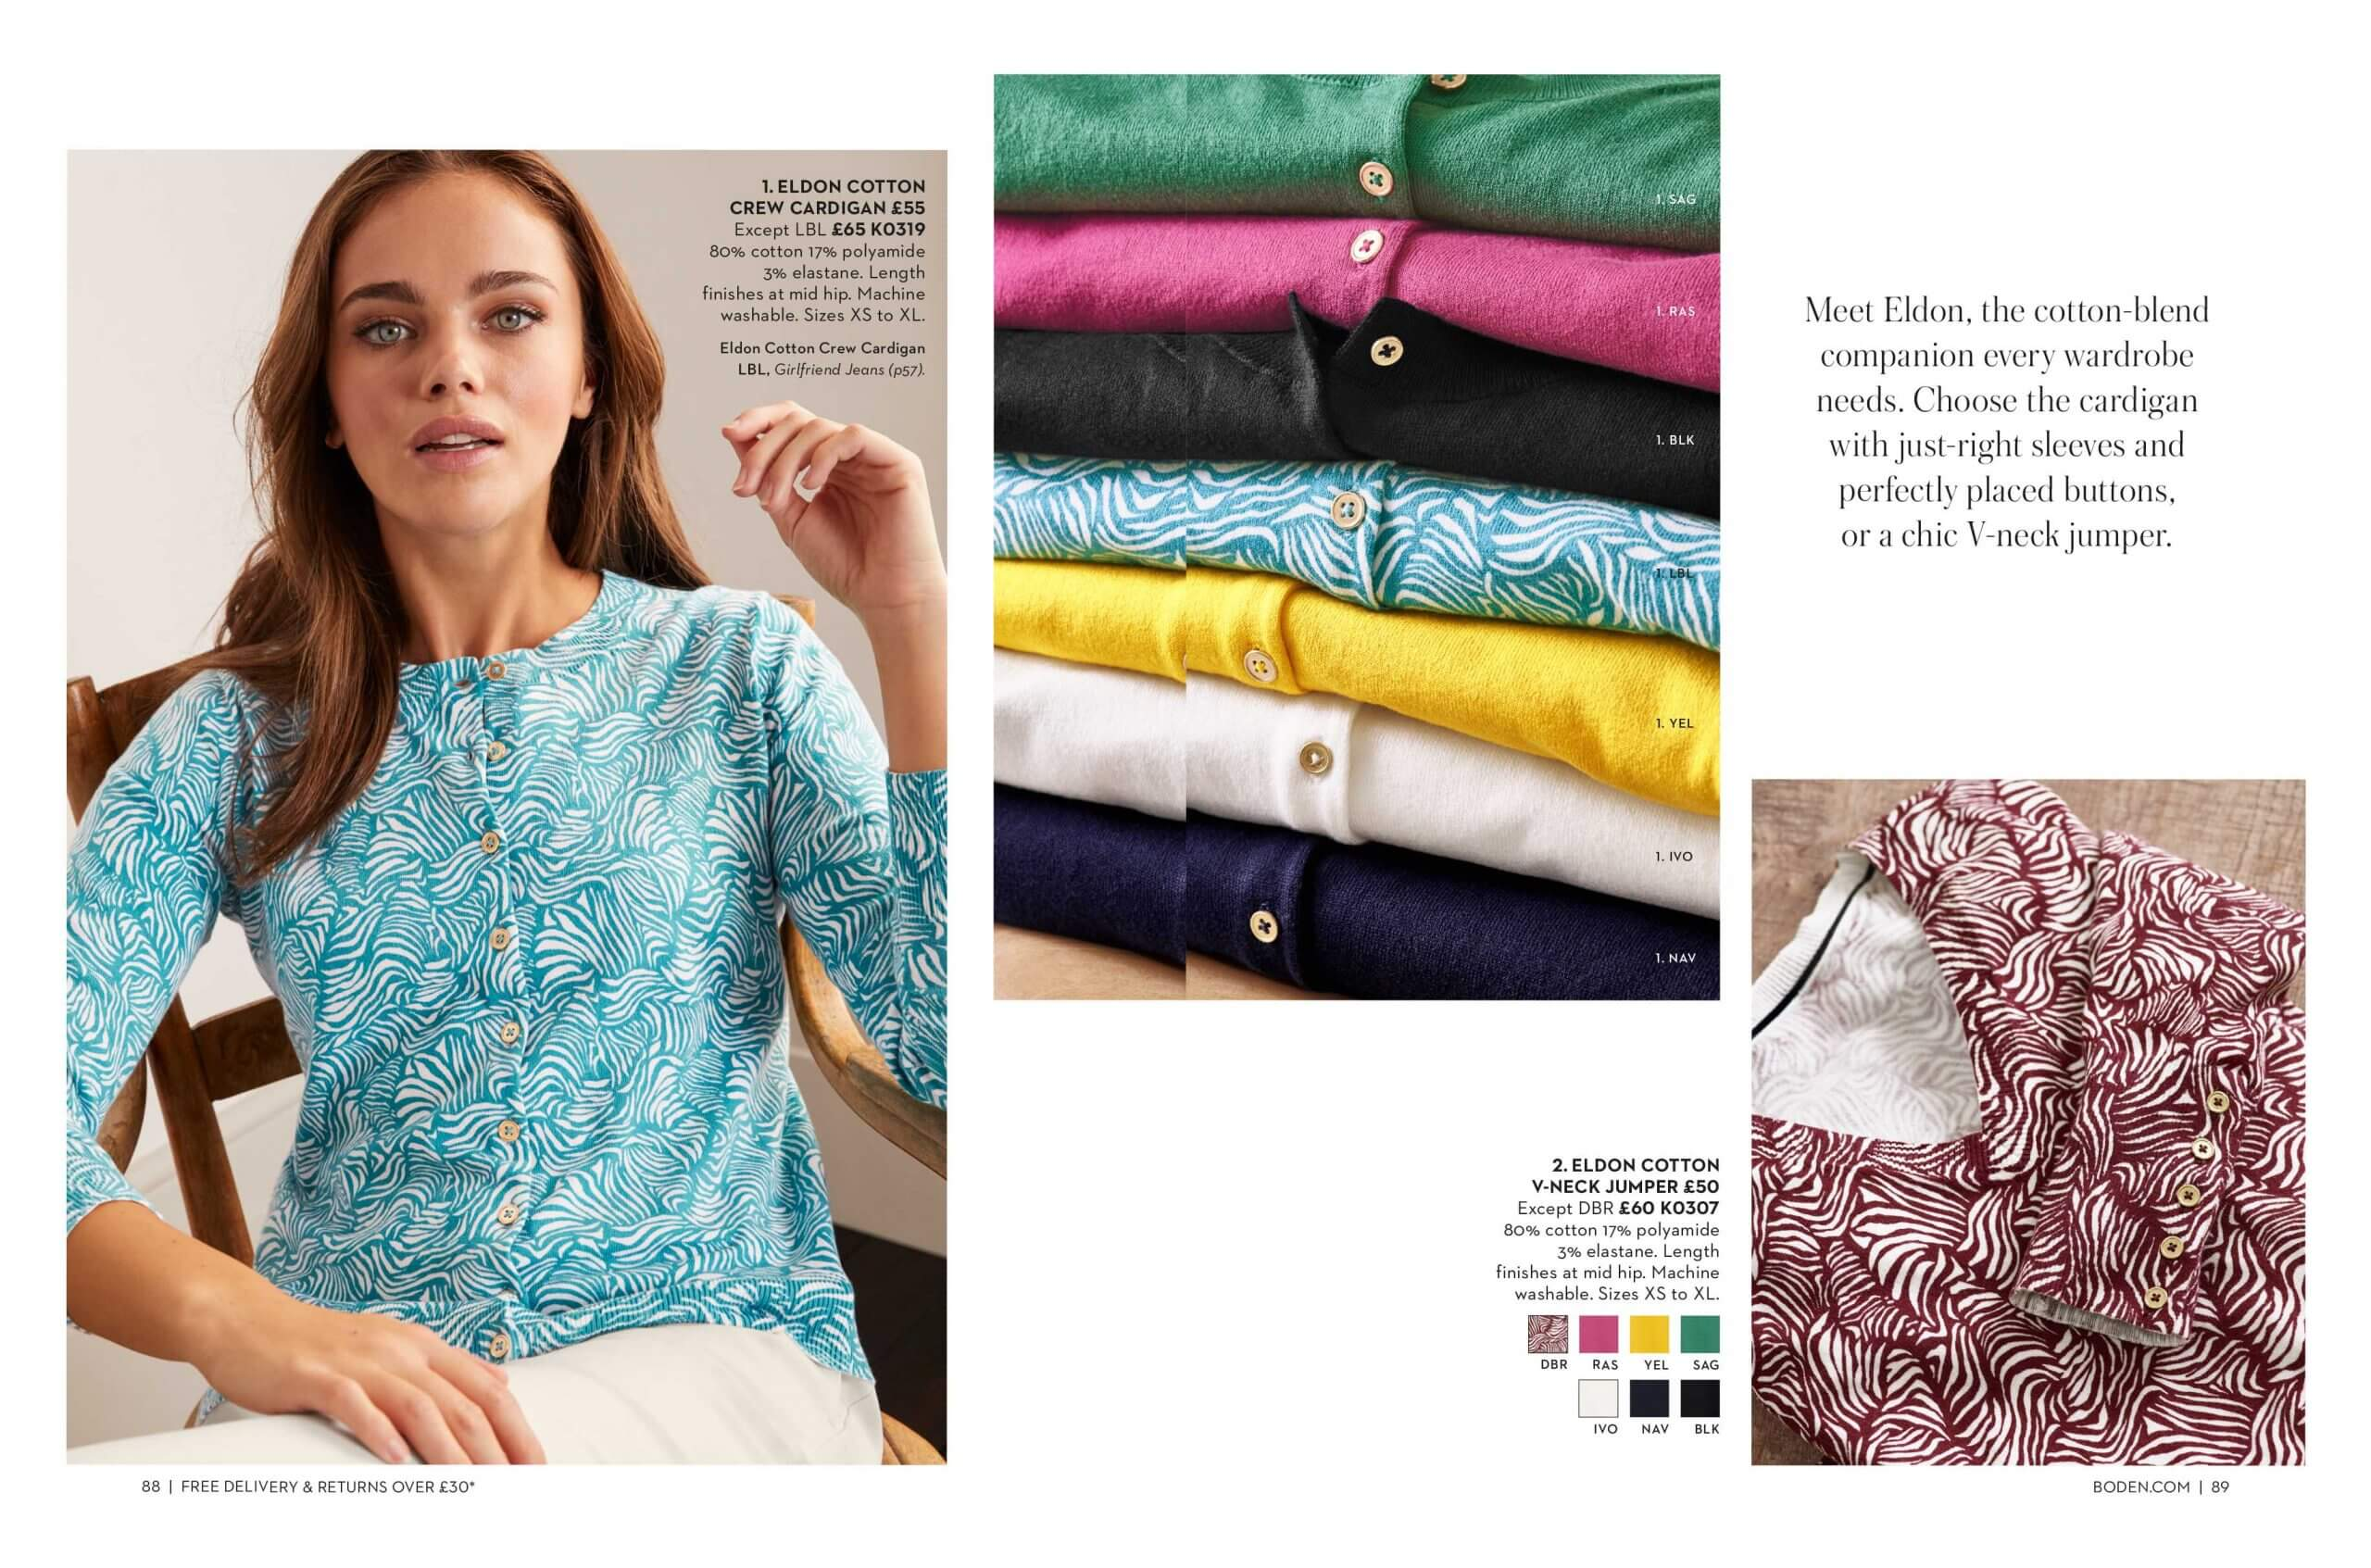 Inner pages of Boden magazine about clothes